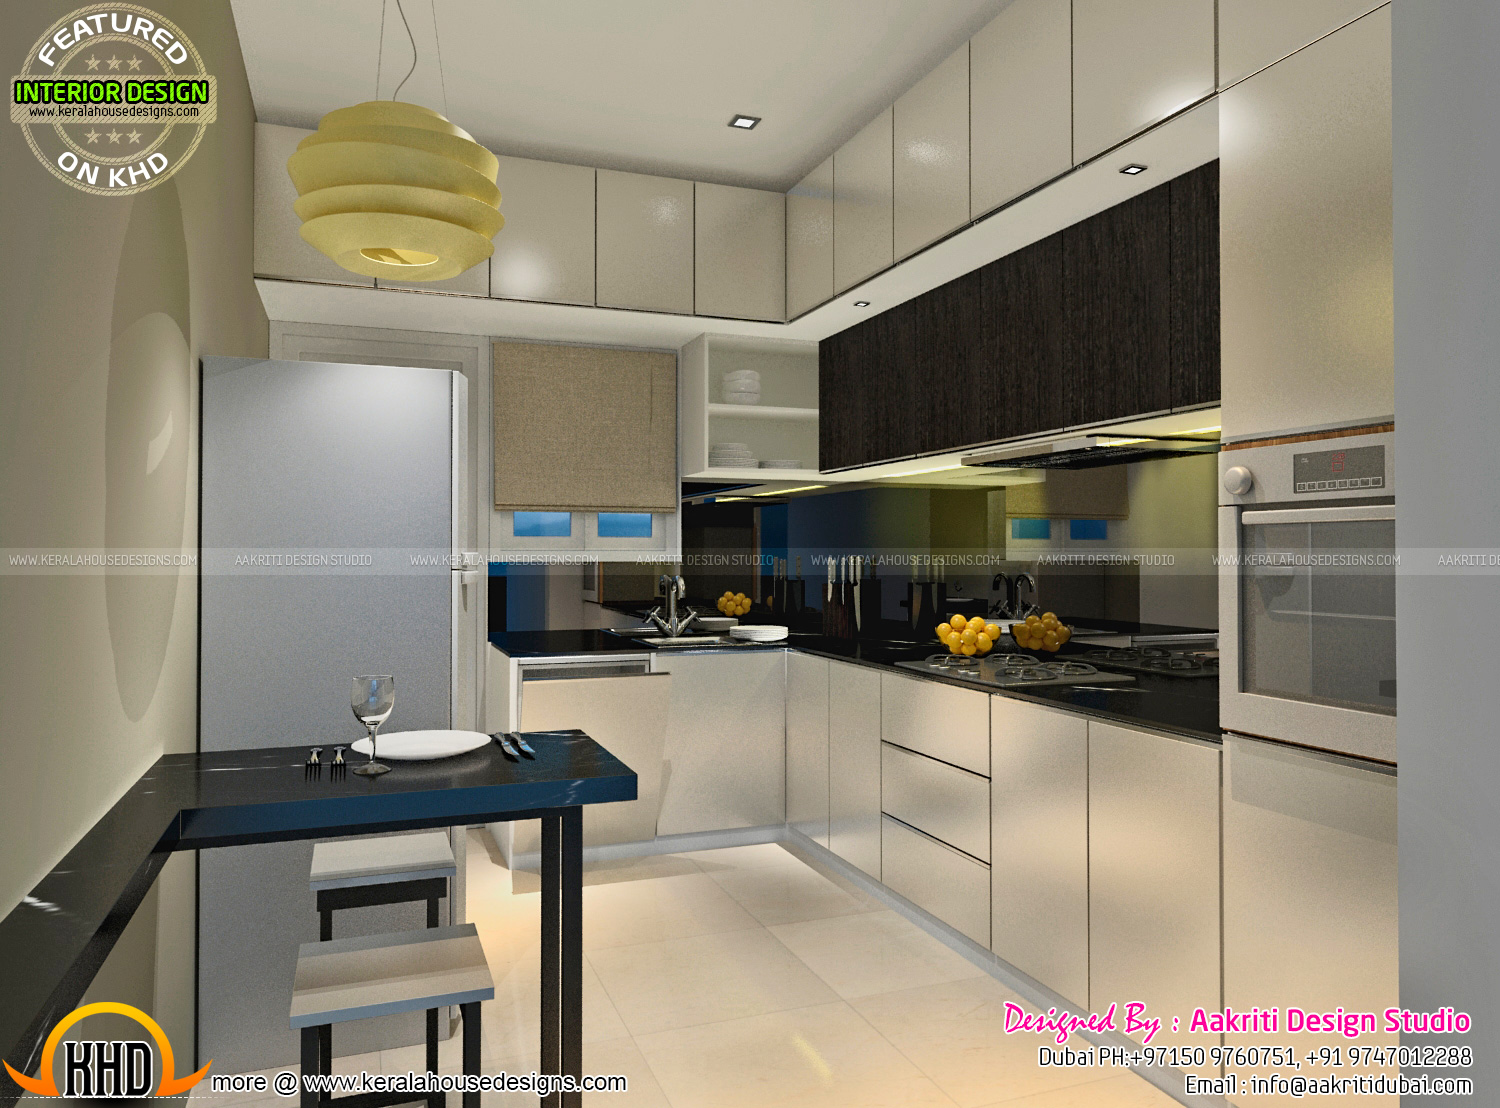 Dining kitchen wash area interior kerala home design for New model house interior design